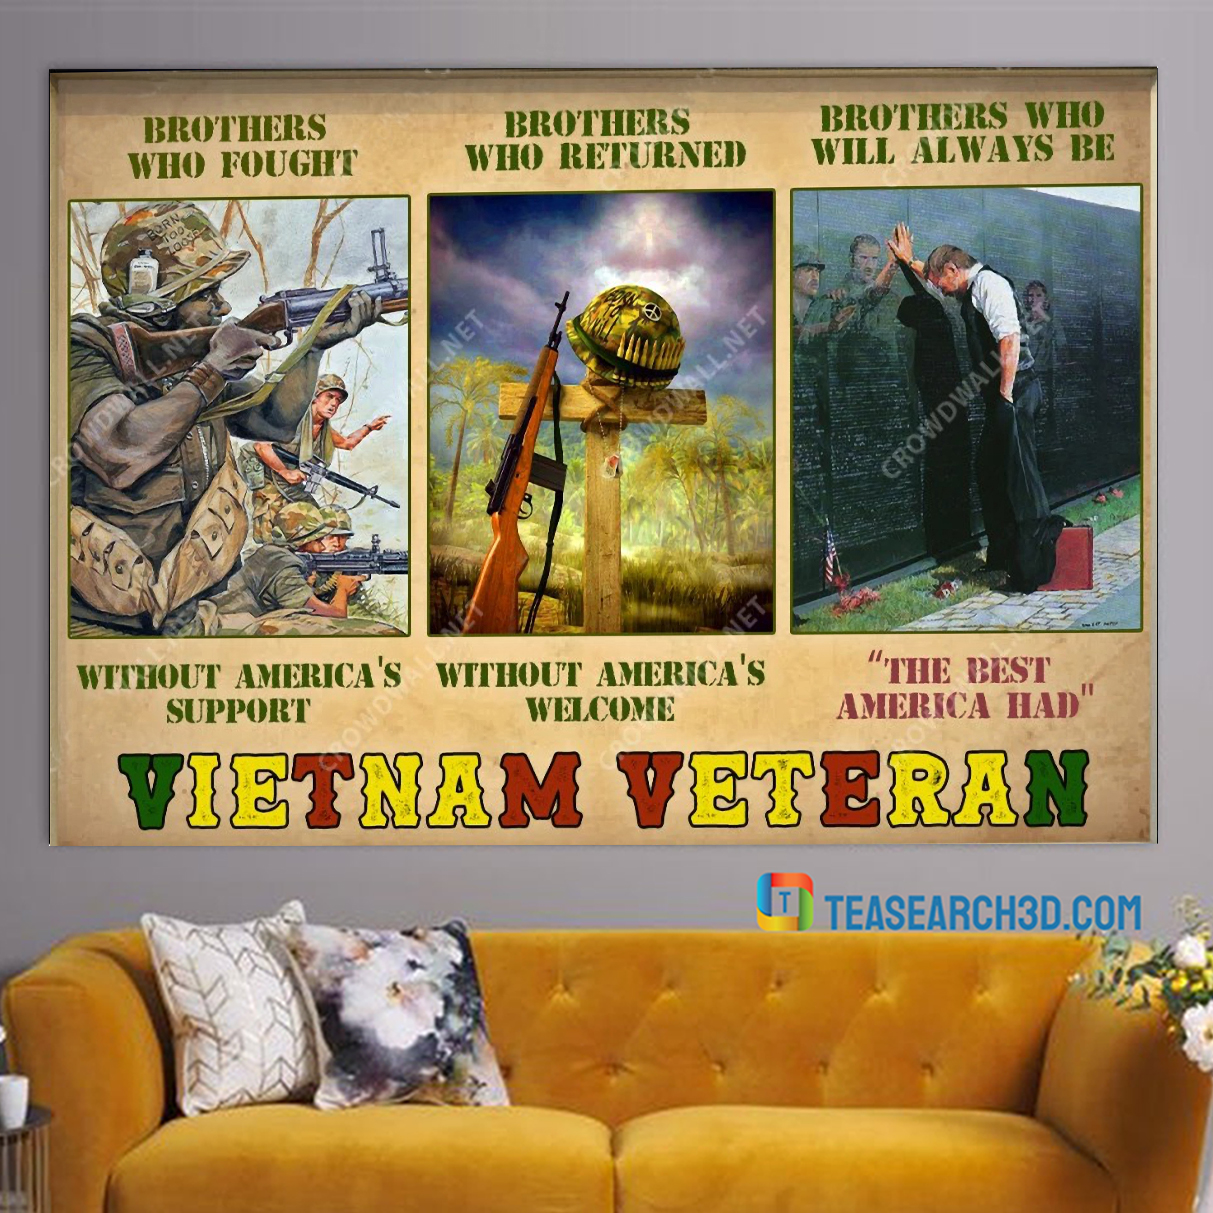 Vietnam veteran brothers who fought without america's support poster A2